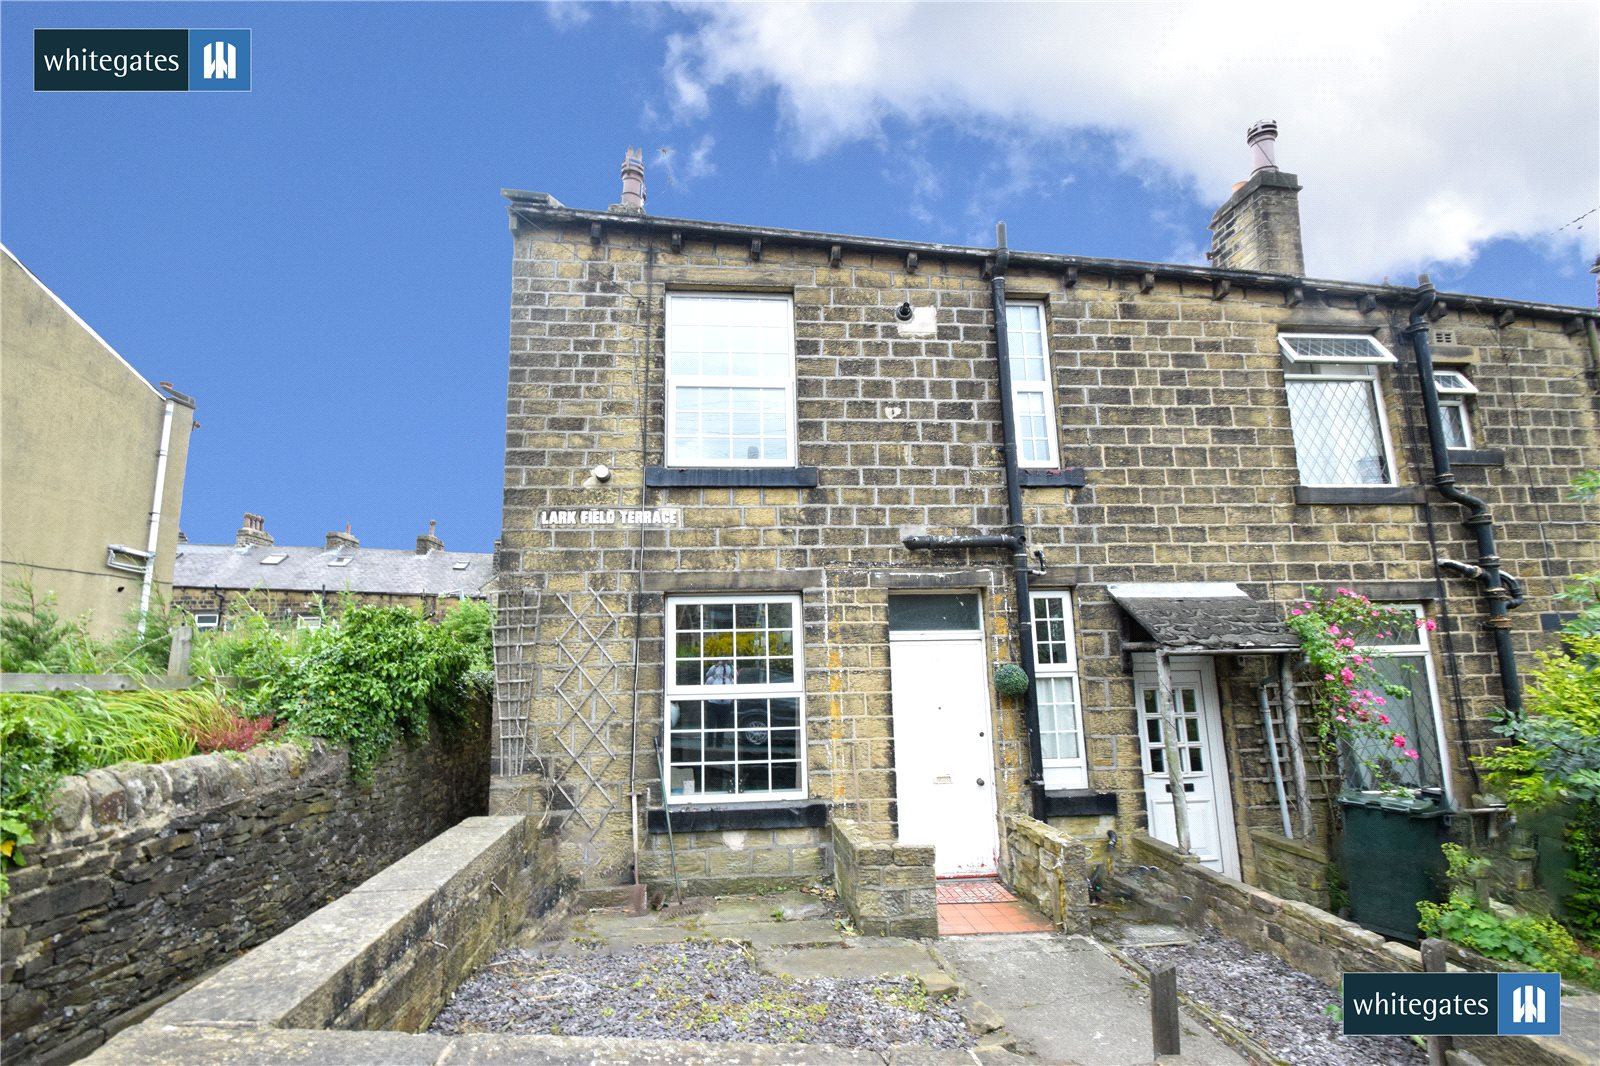 Yorkshire Terrace: Whitegates Keighley 2 Bedroom House For Sale In Larkfield